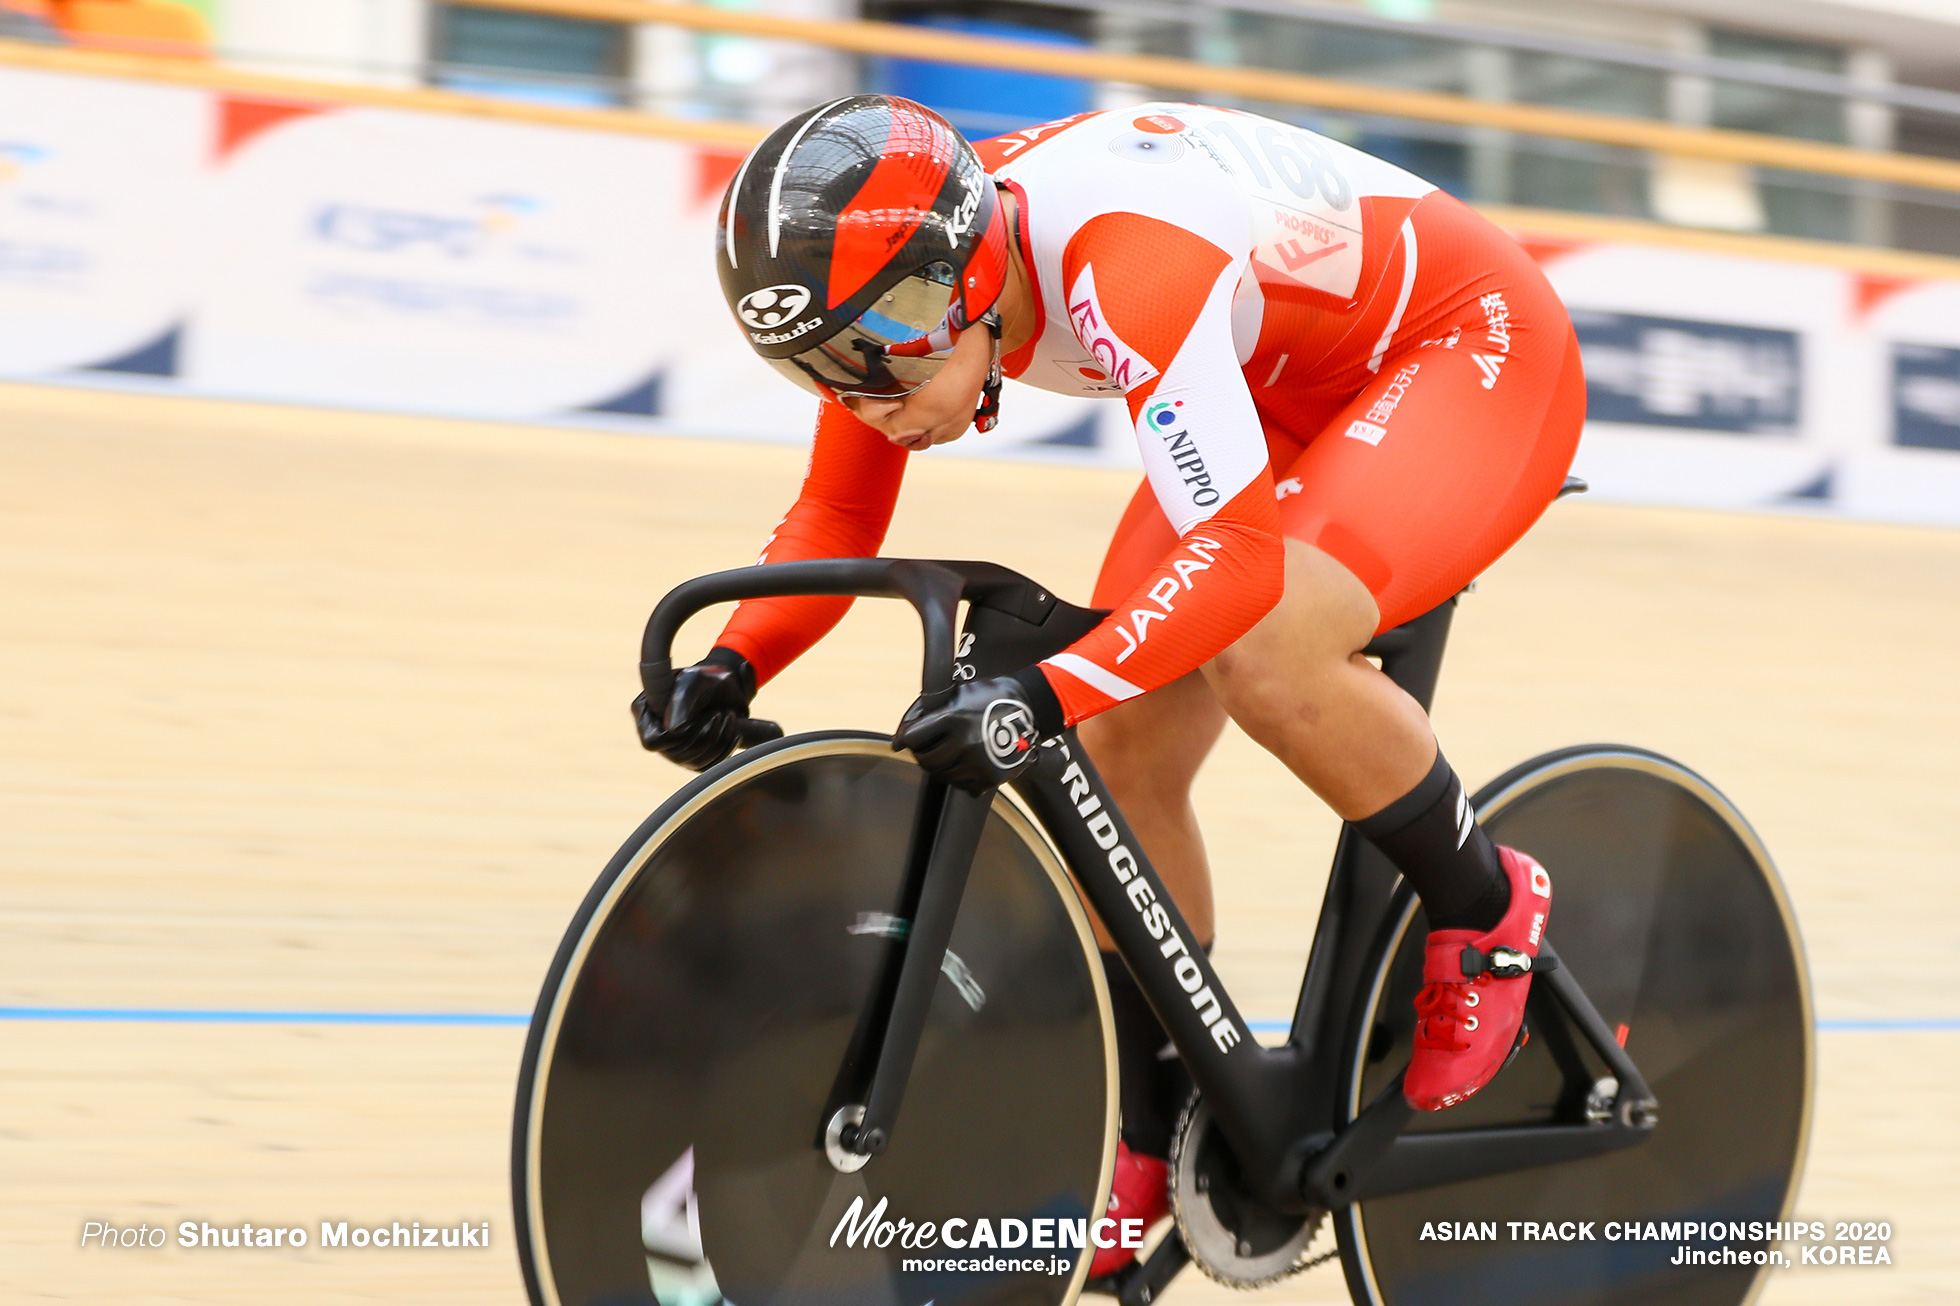 Qualifying / Women Sprint / ASIAN TRACK CHAMPIONSHIPS 2020